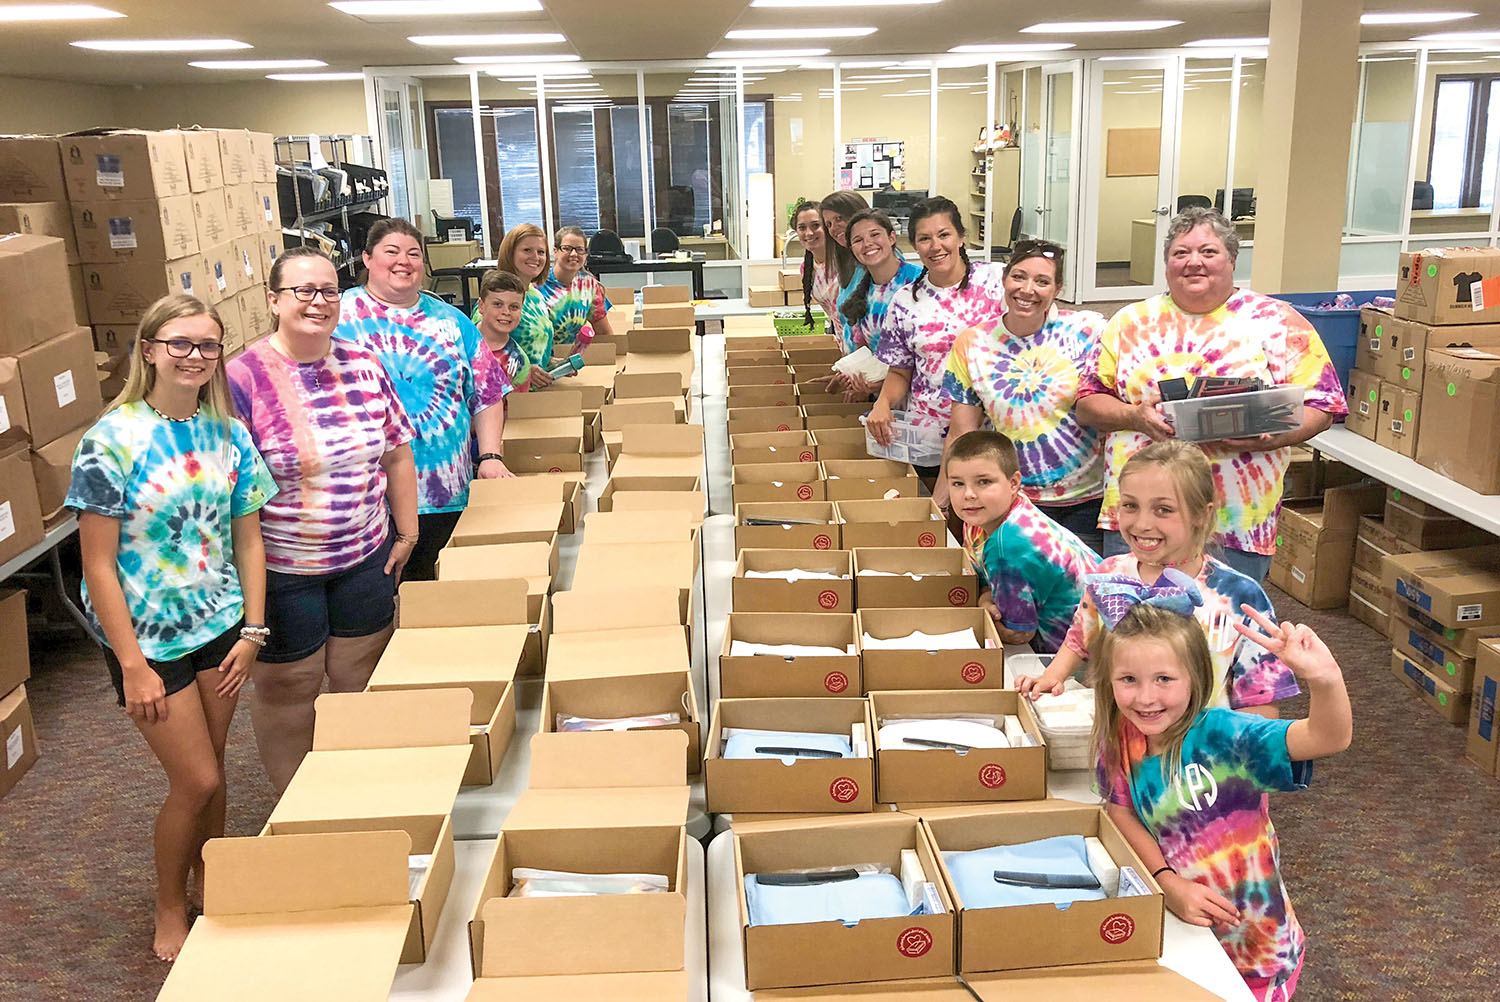 Thank you to the hundreds of volunteers who serve during our Shoebox Drive. Each shoebox counts, because each child matters. So plan now to host a packing party at your church, school, or office.